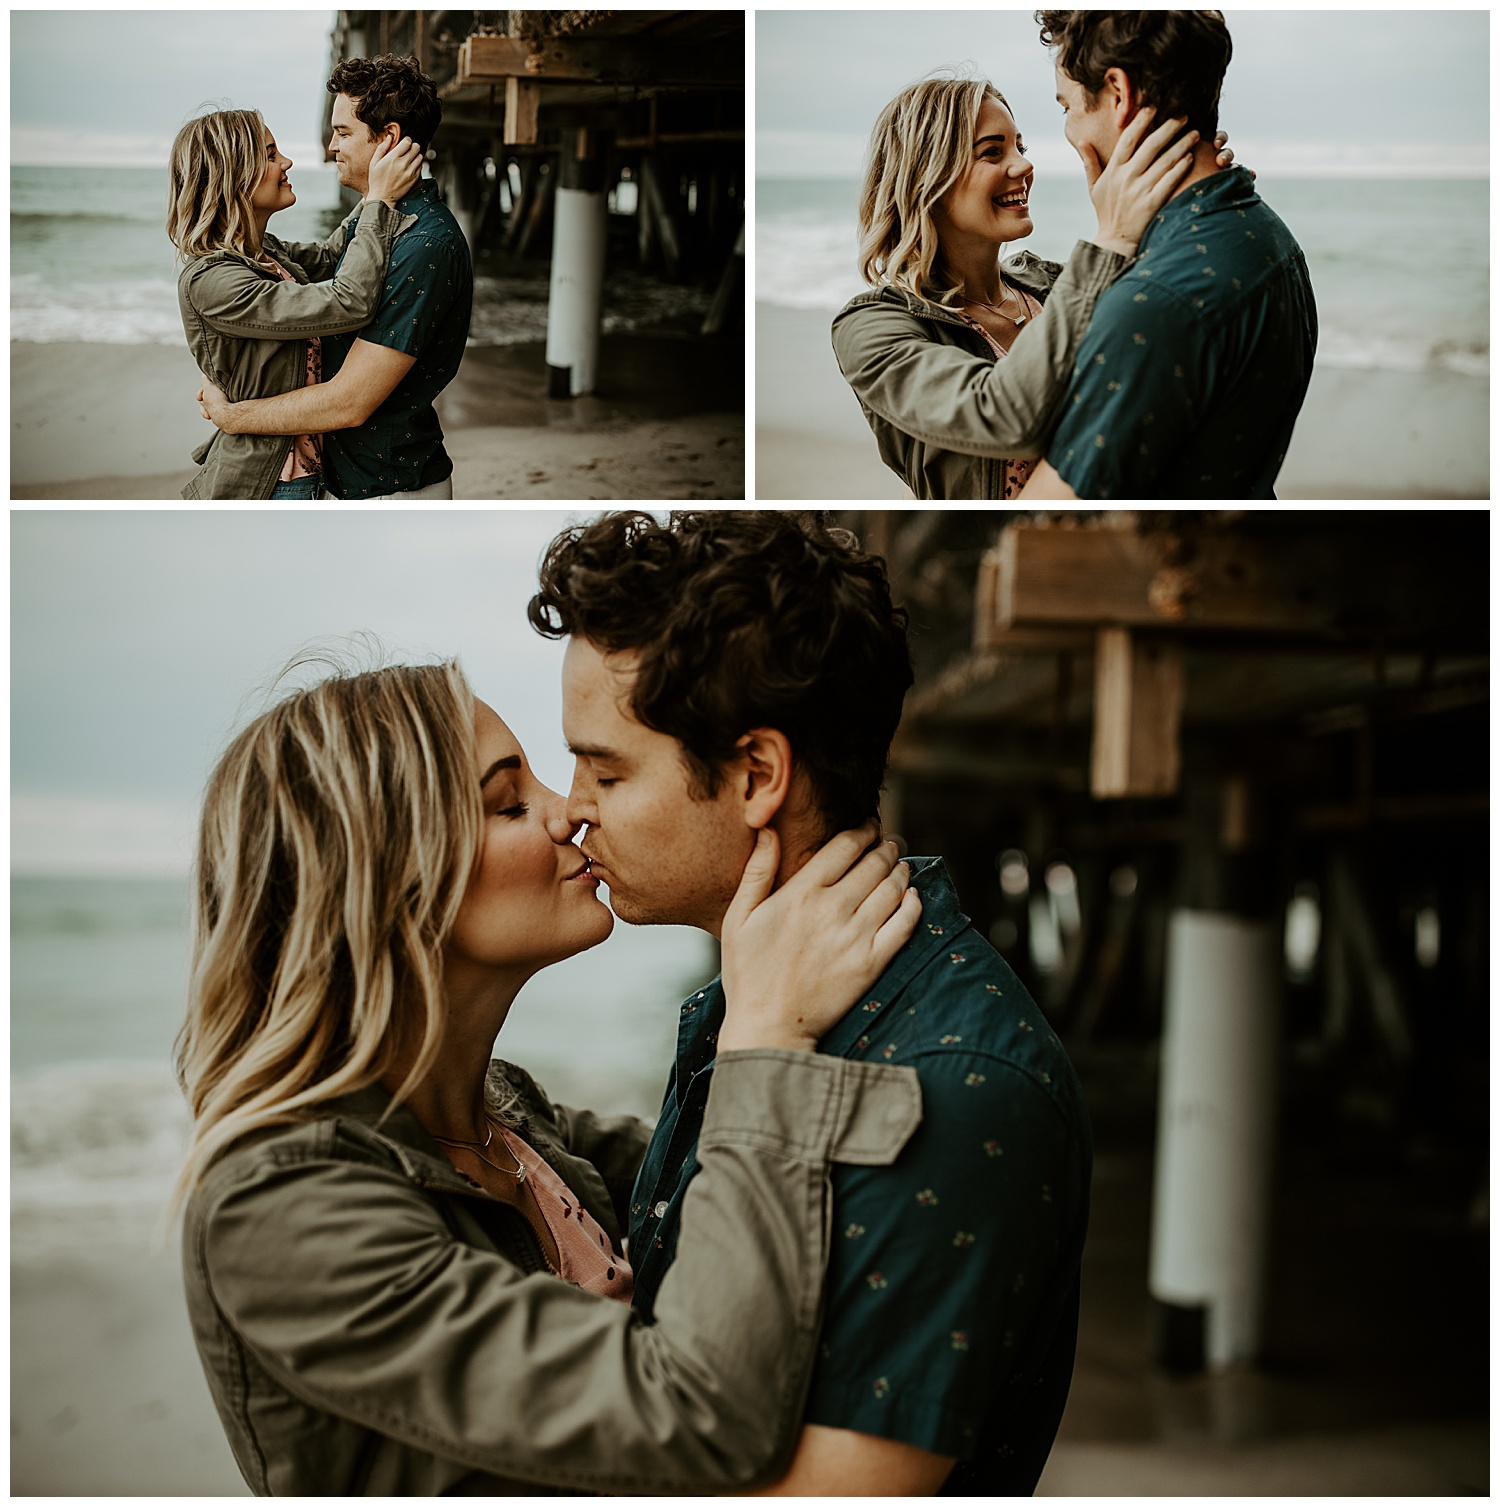 Laken-Mackenzie-Photography-Santa-Monica-Pier-Couples-Session-Kami-TJ-Malibu-Couples-Session17.jpg